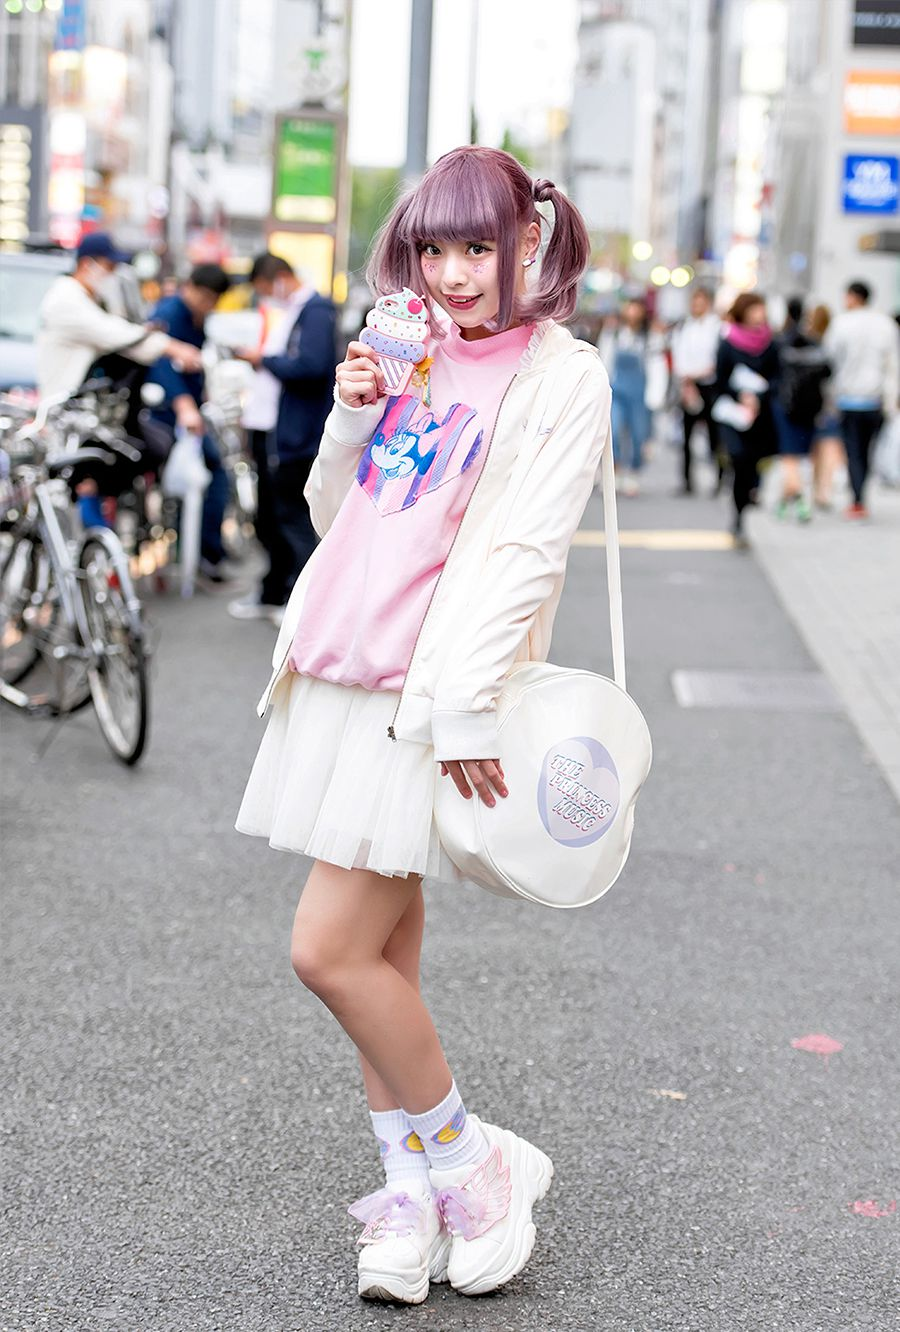 Harajuku Girl with Pastel Twintails and Kawaii Fashion by Ank Rouge and  Neon Moon 6608bec6f2fd